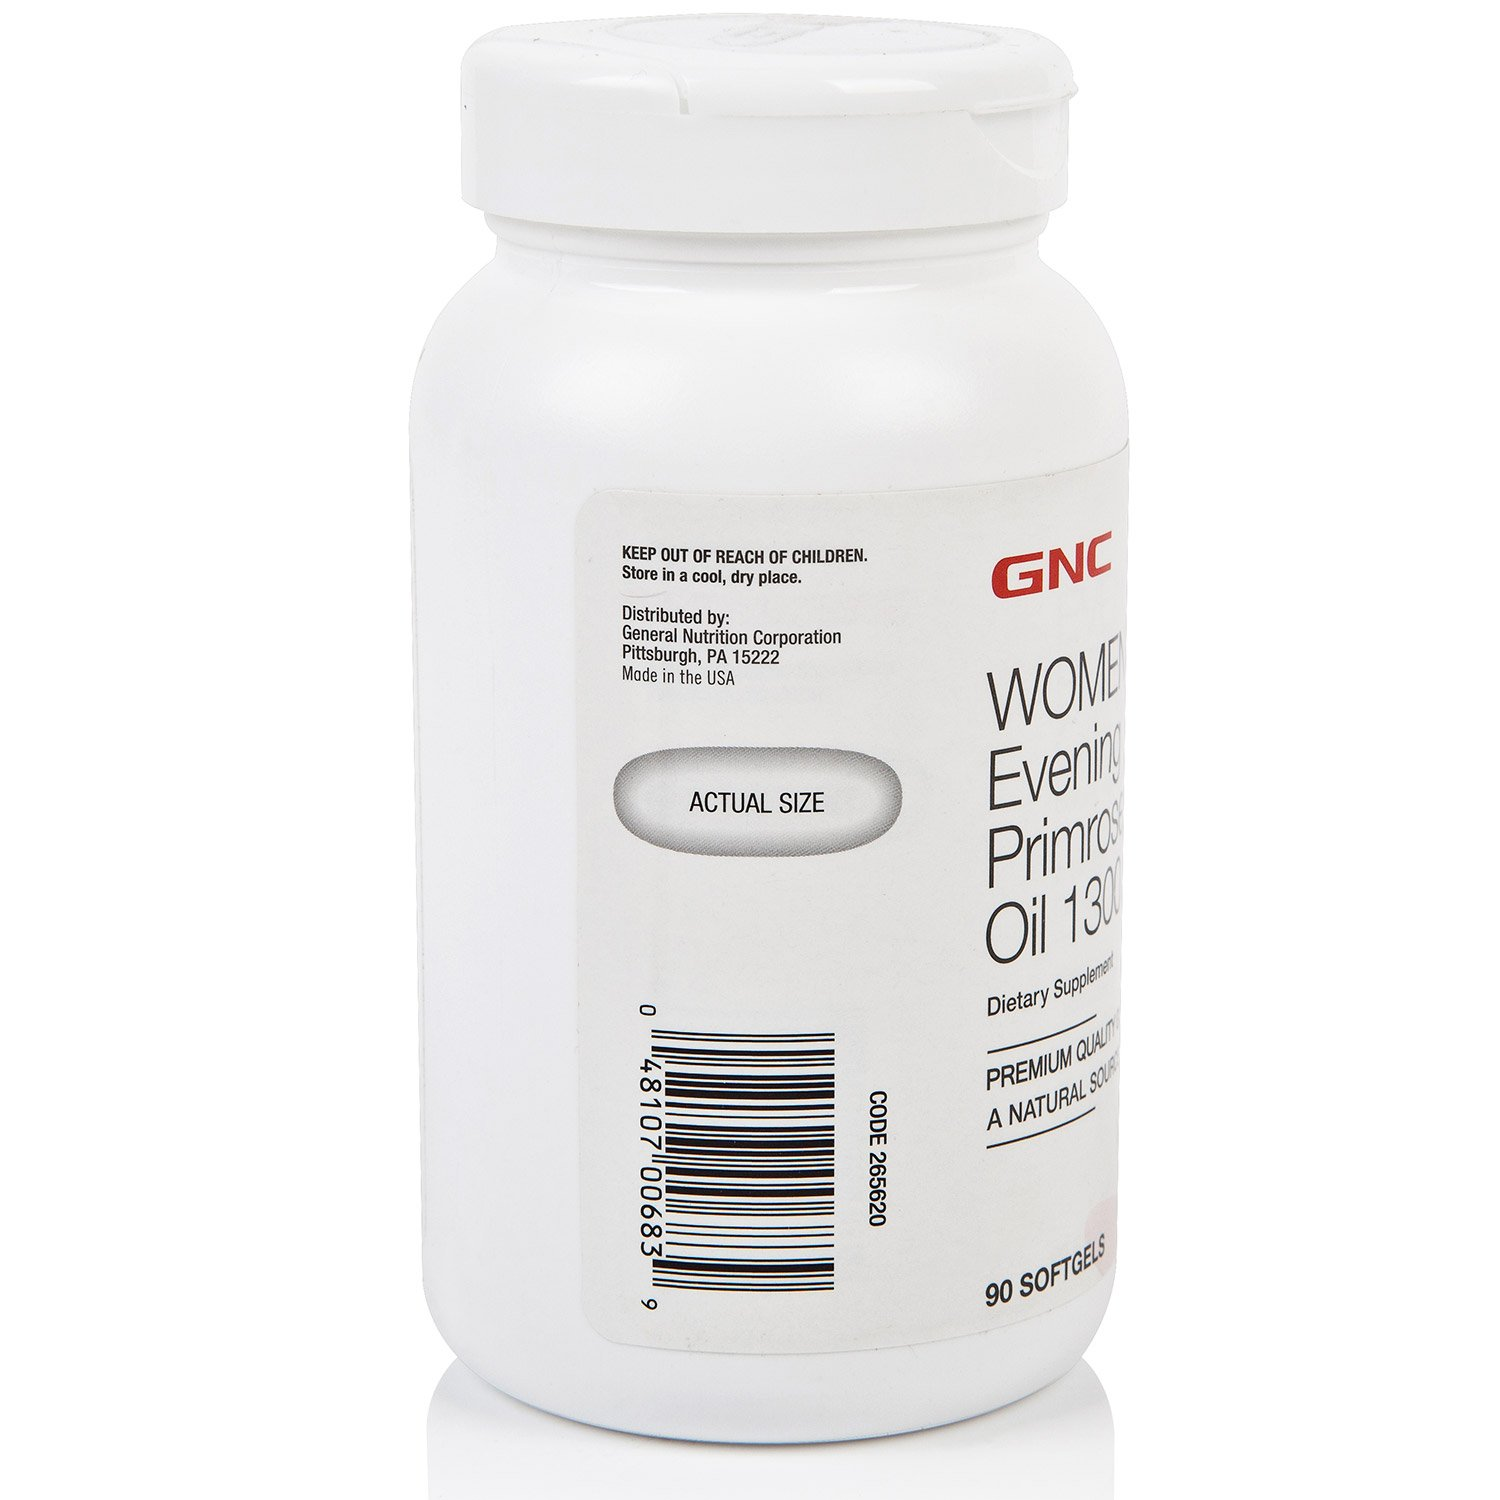 Cla dietary supplement weight loss gnc have all nothing